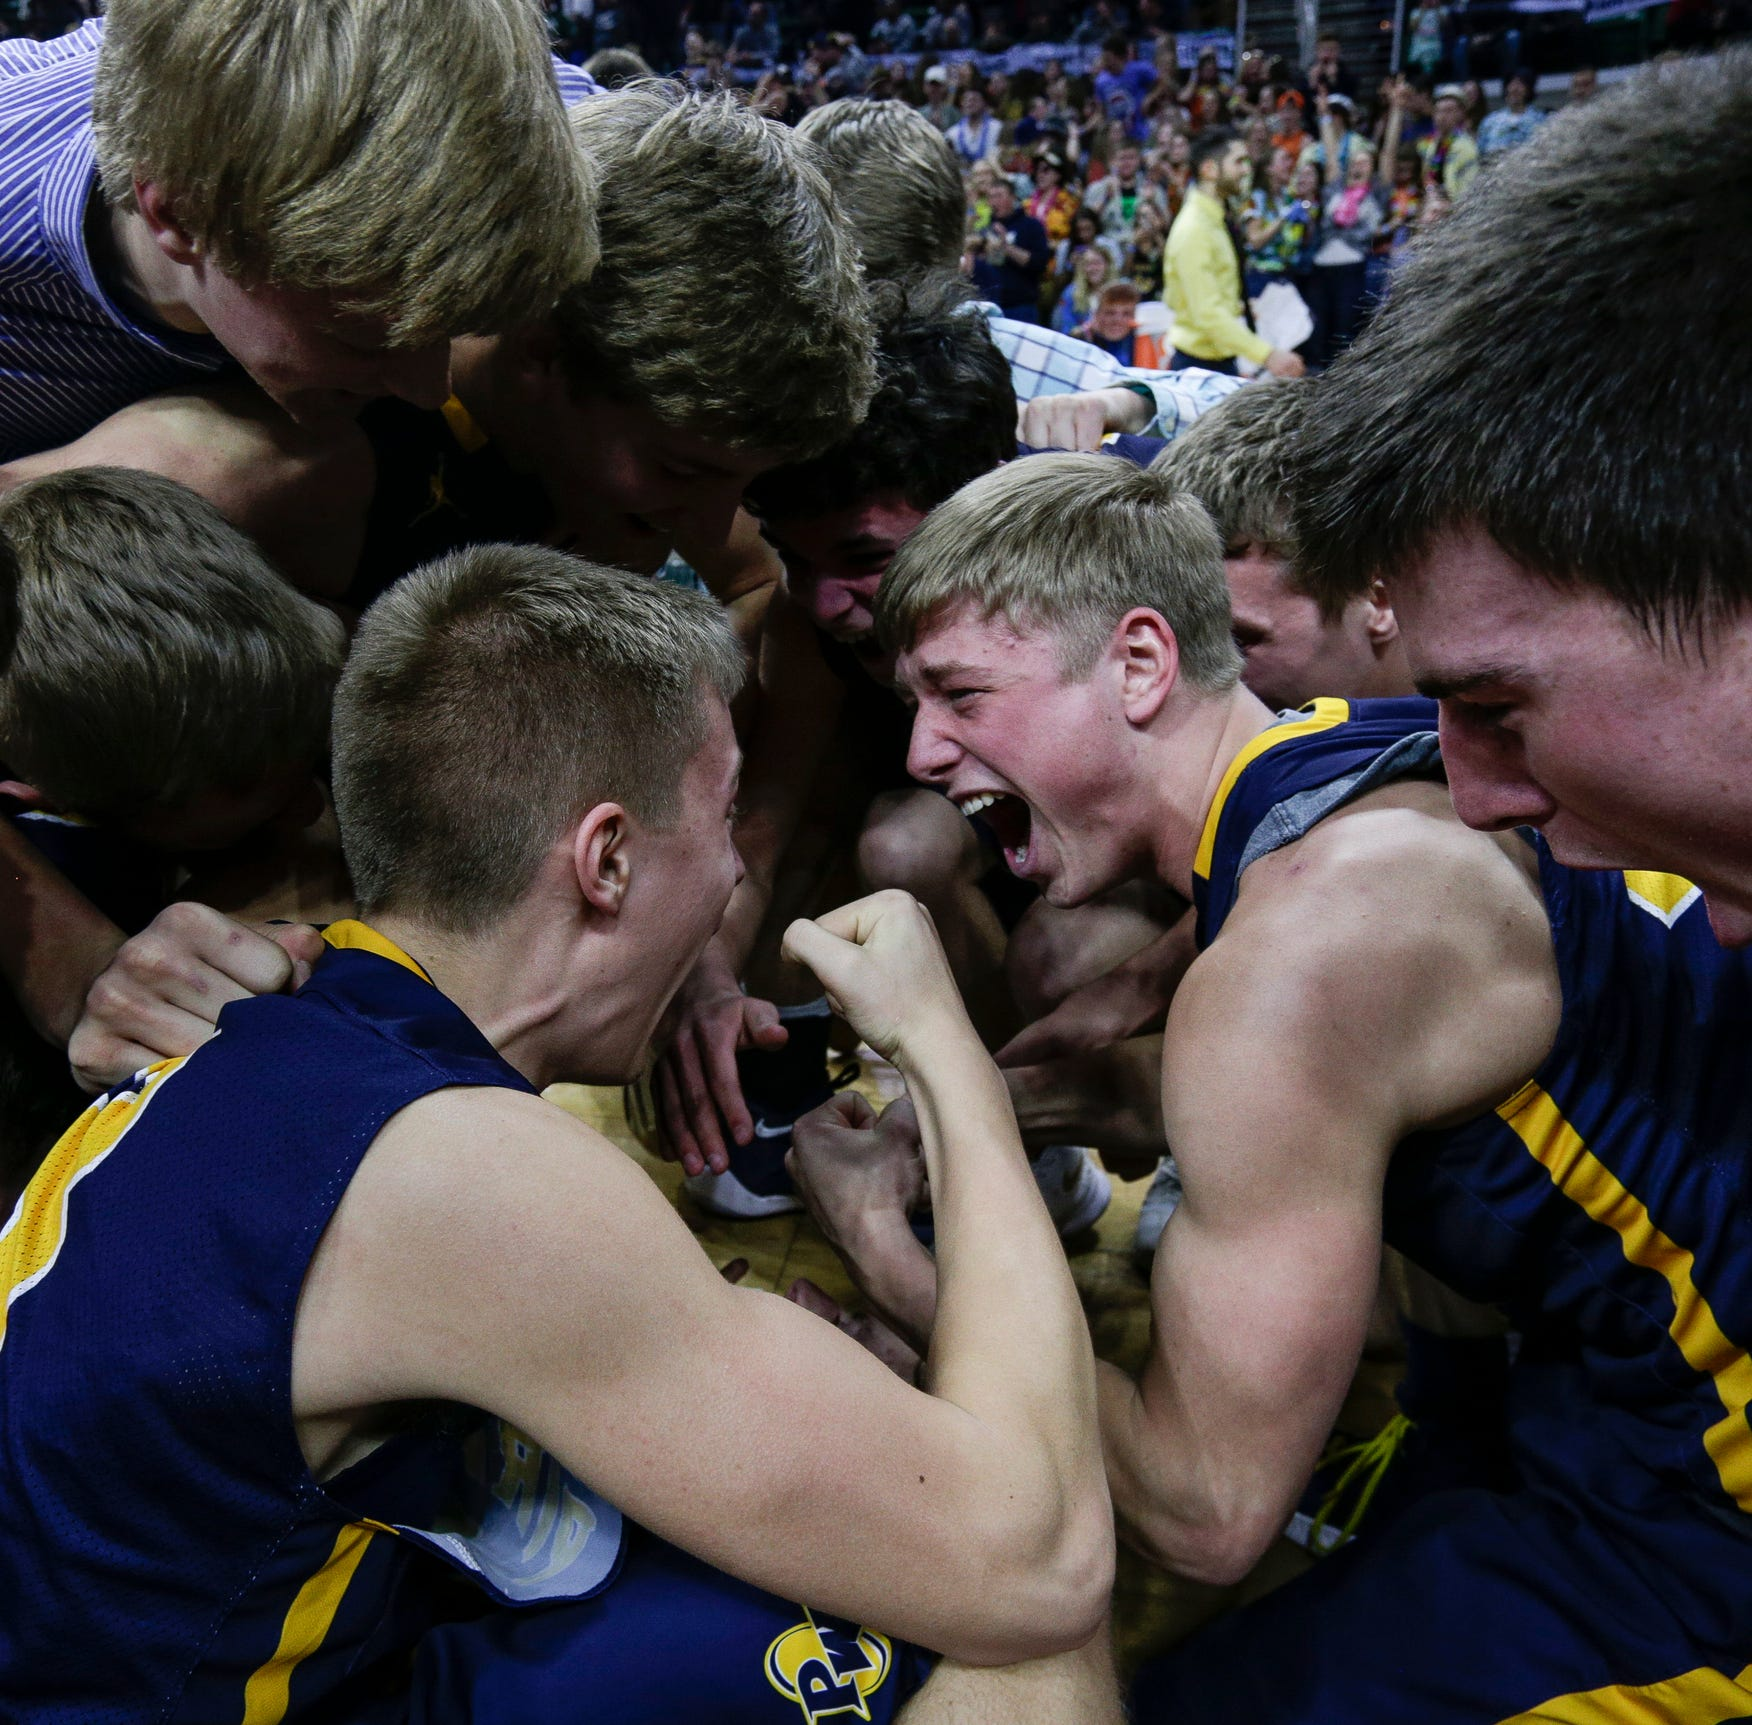 MHSAA basketball bad calls in state finals can be avoided. Here's how